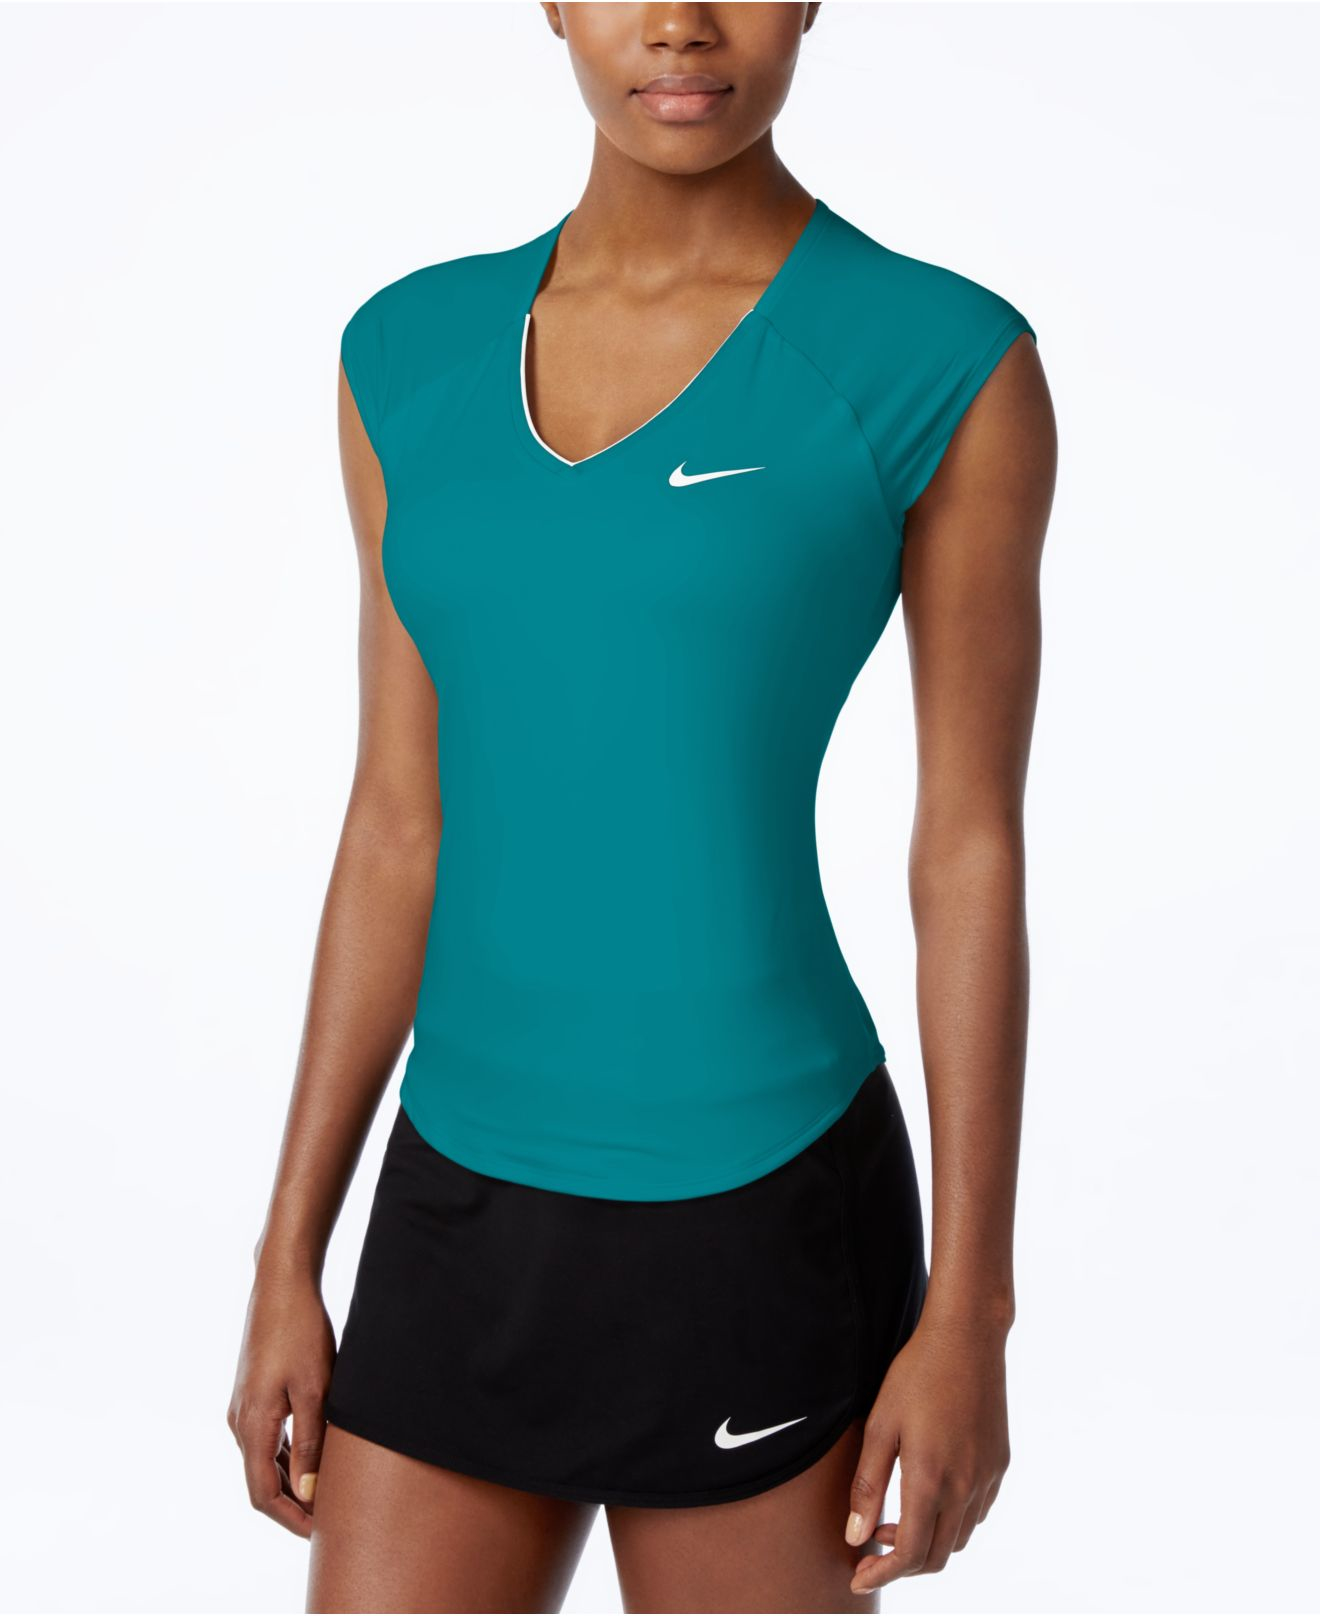 nike court pure dri fit tennis top in green lyst. Black Bedroom Furniture Sets. Home Design Ideas